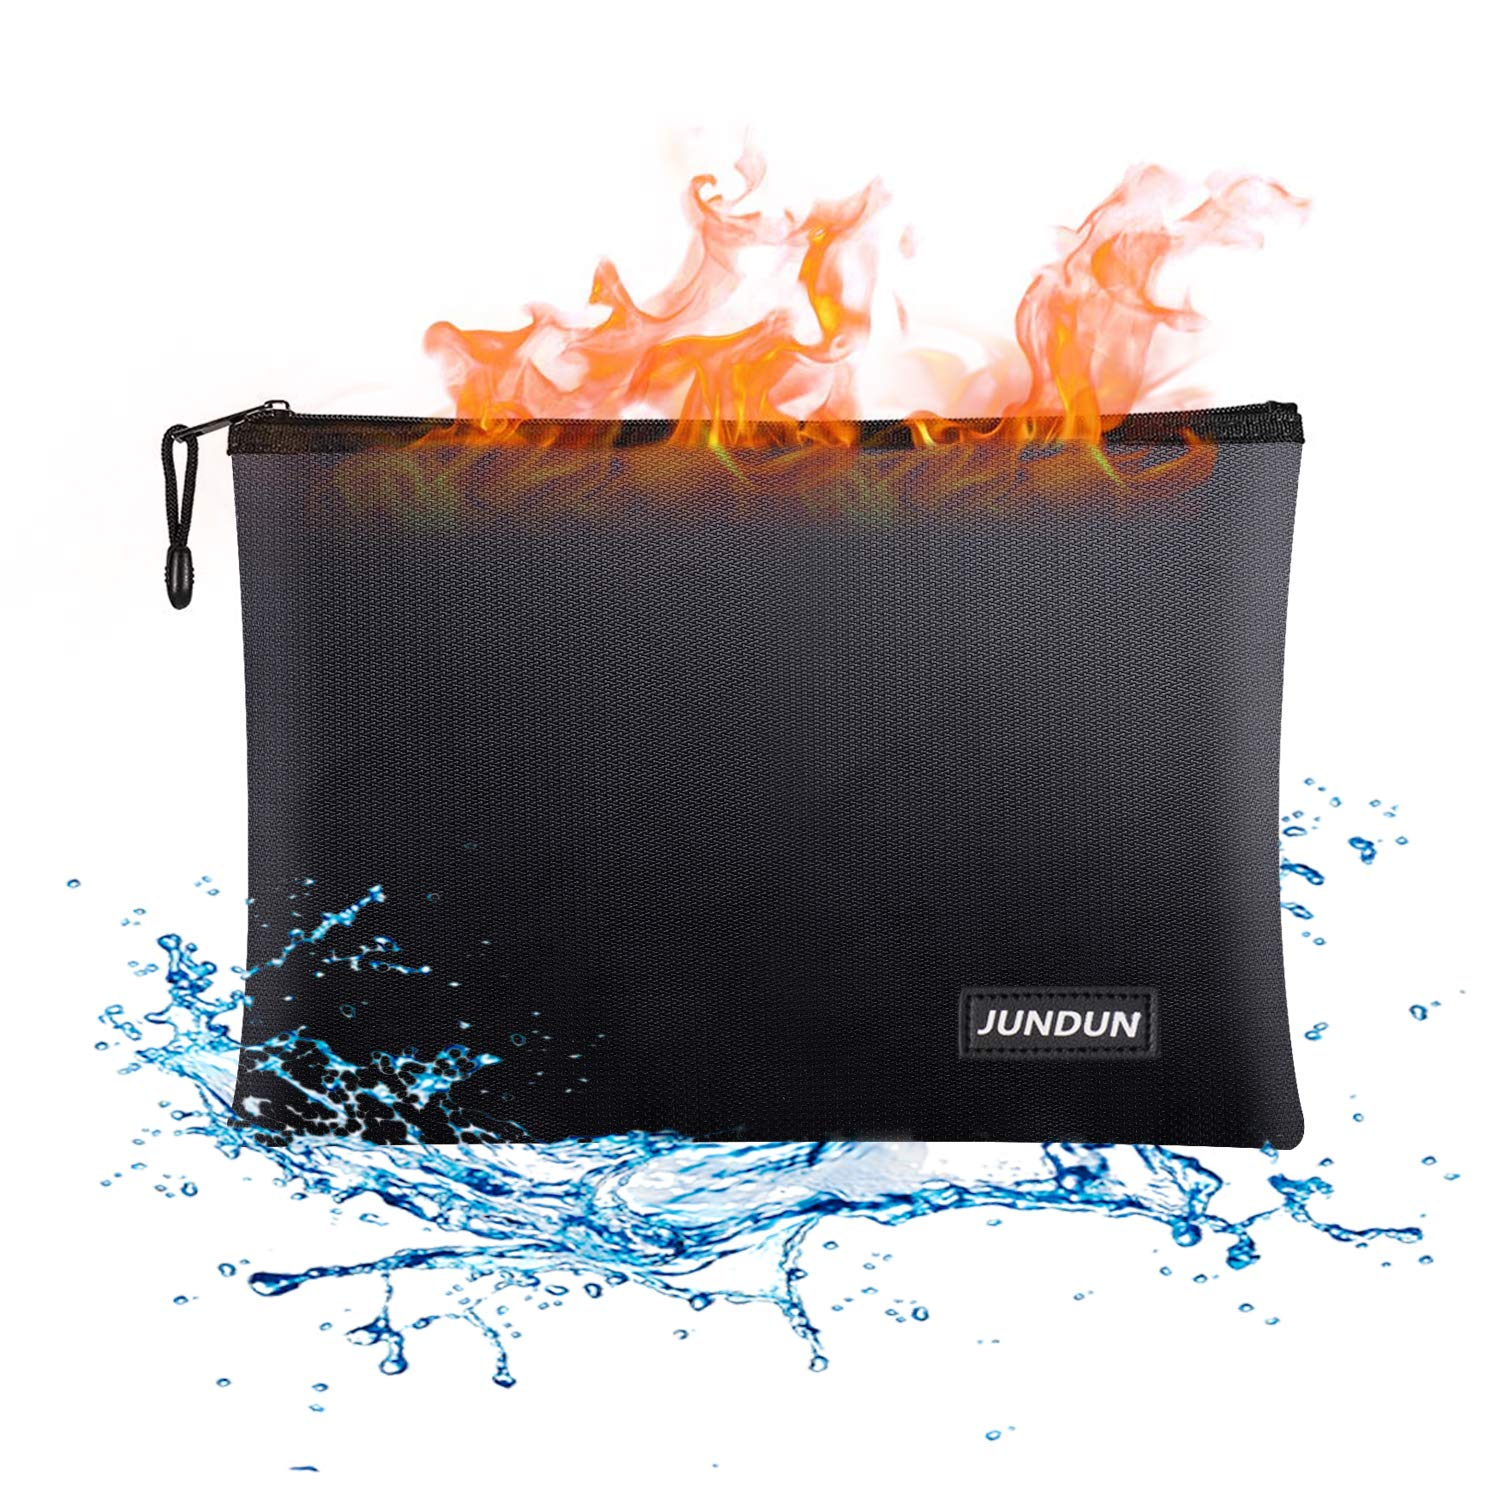 JUNDUN Fireproof Document Bags,13.4''x 9.4''Waterproof and Fireproof Money Bag,Fire Resistant Safe Storage Pouch with Zipper for A4 Document Holder,File,Cash and Tablet